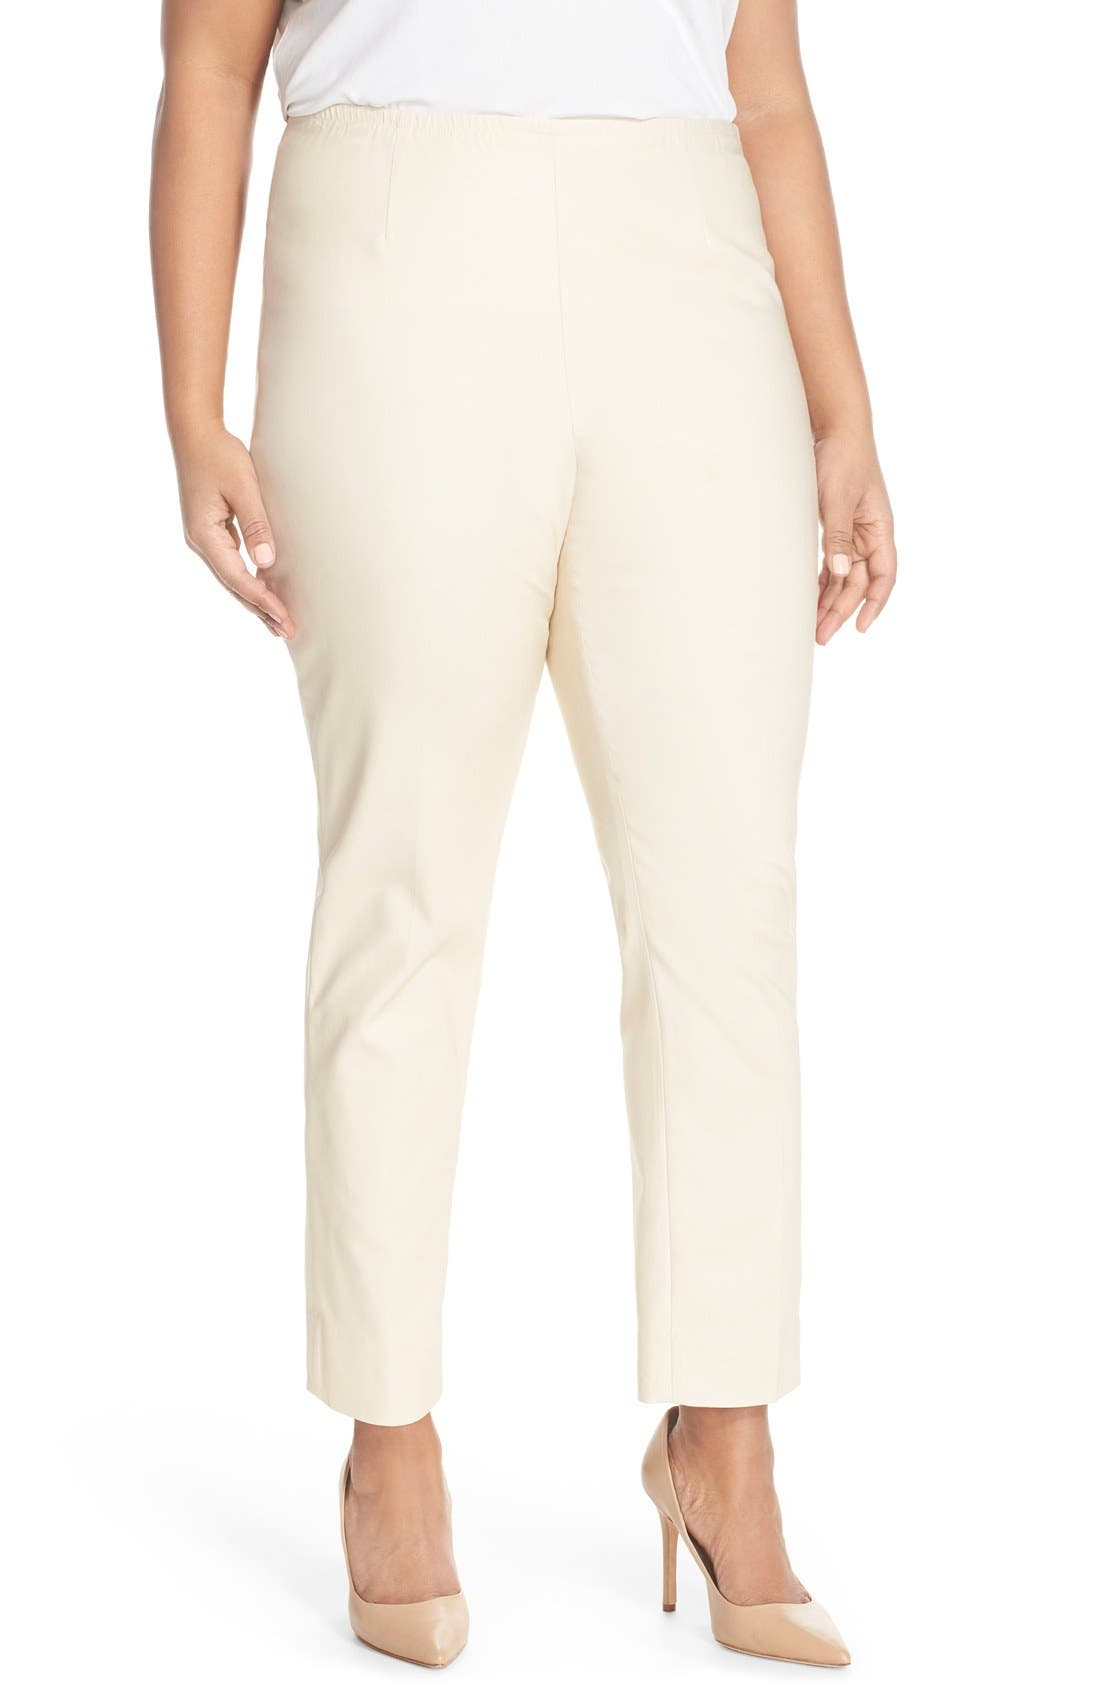 Clean, no-pocket styling creates a flattering, streamlined fit for versatile stretch-woven pants tailored with slim-cut legs. Style Name: Nic+Zoe \\\'Perfect\\\' High Rise Side Zip Pants (Plus Size). Style Number: 5021651 3. Available in stores.